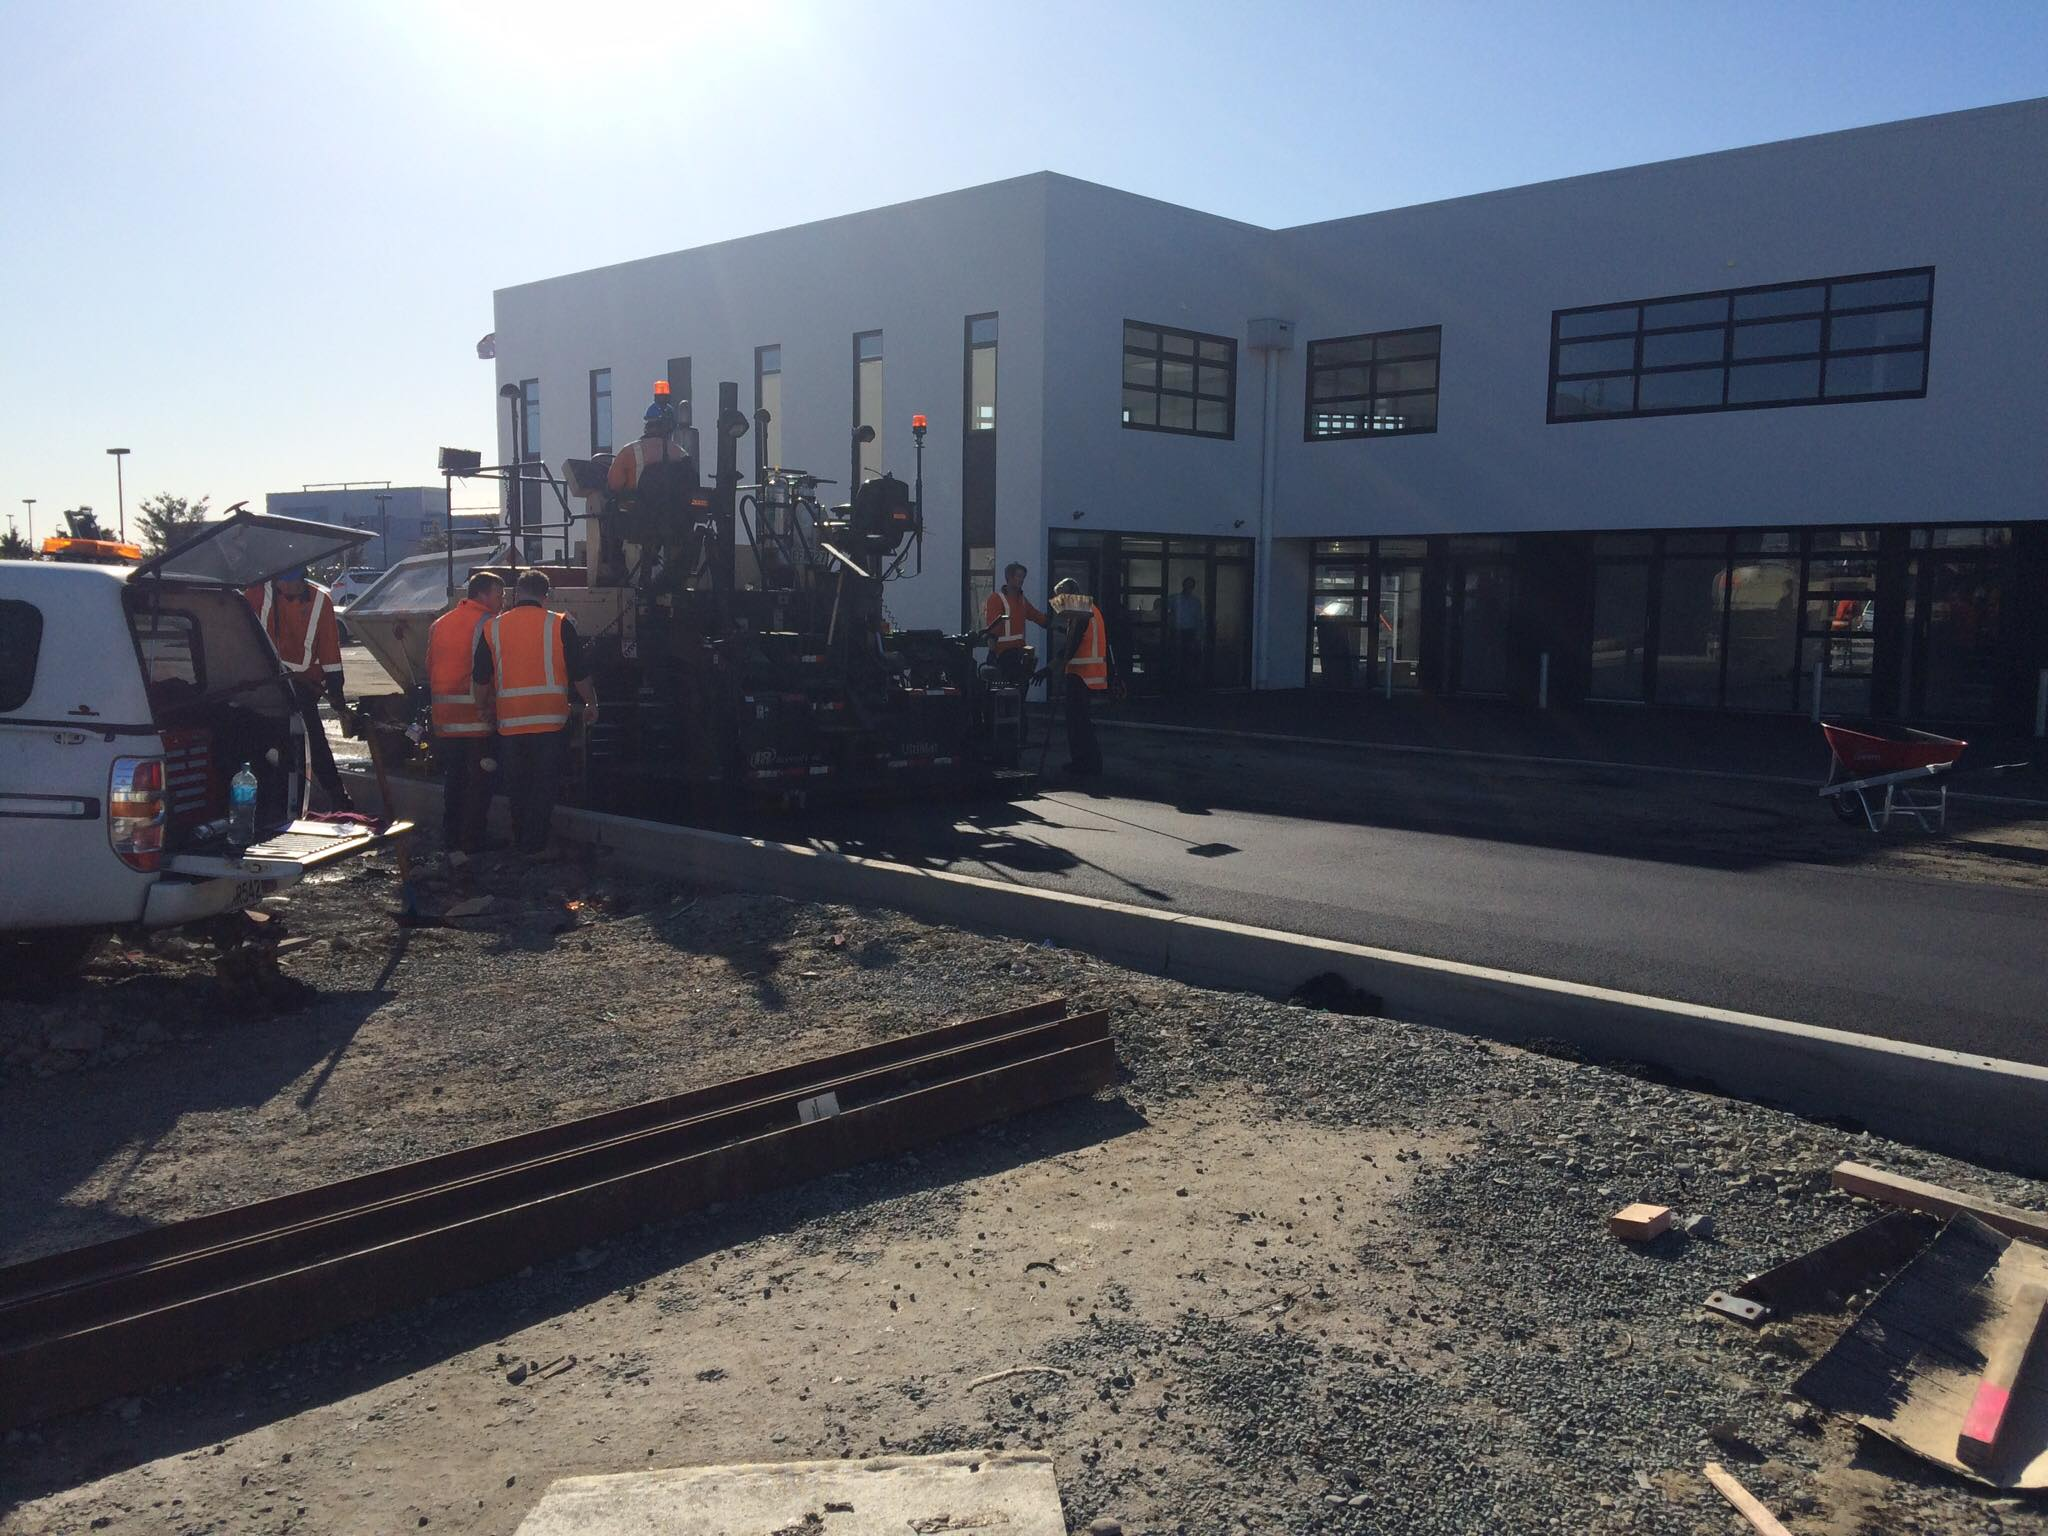 The Tyne Street Commercial Construction project in Christchurch